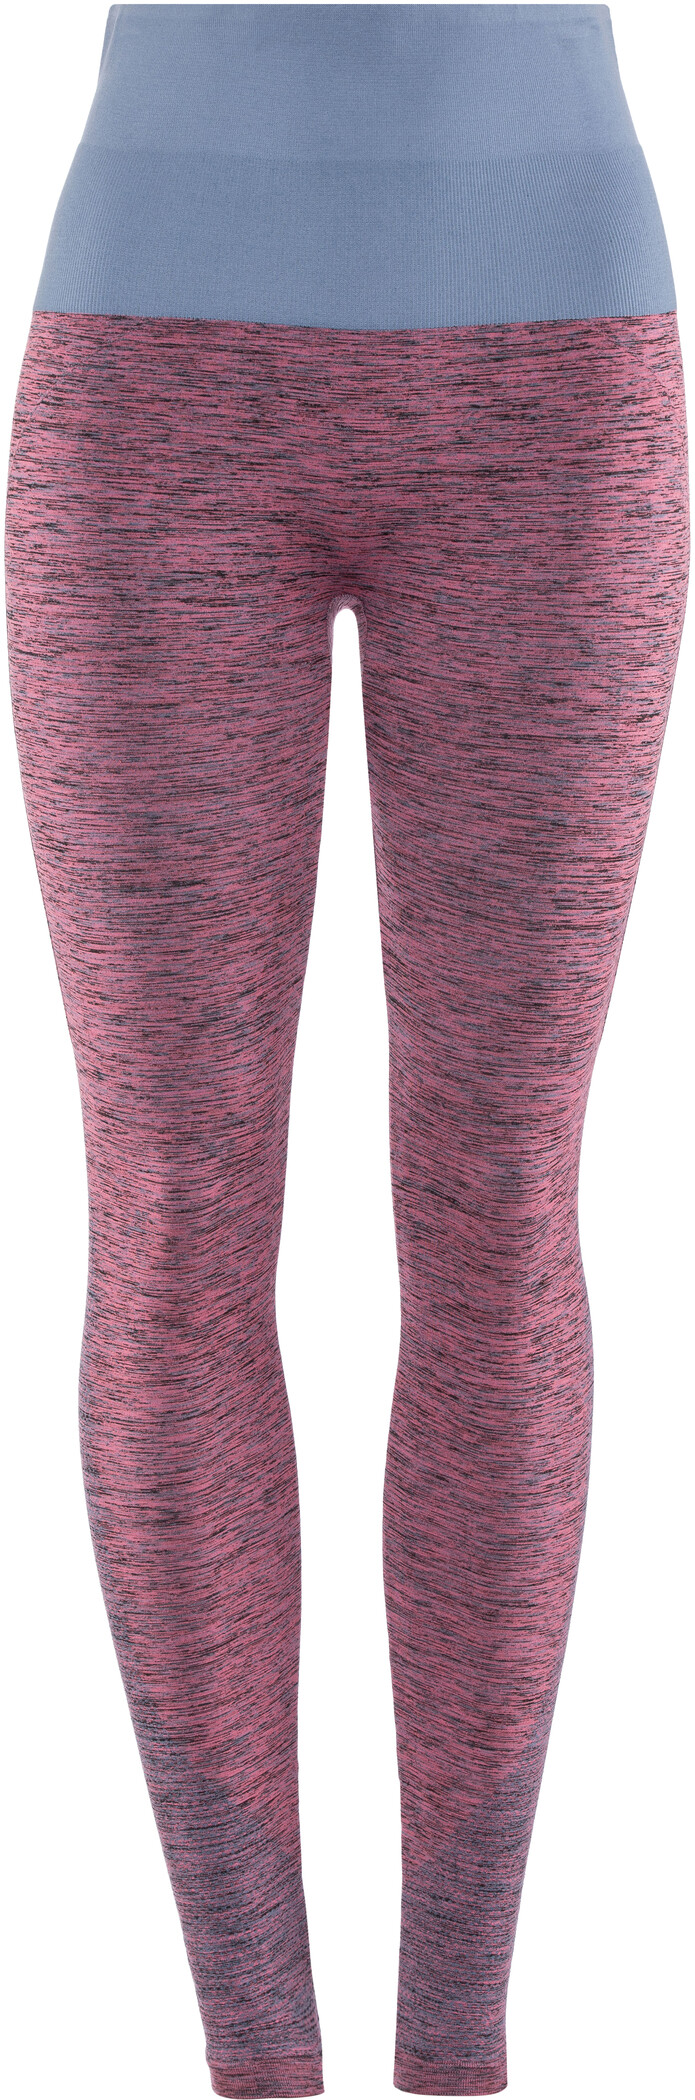 Kidneykaren Yoga Bukser Damer, pink patrole (2019) | Trousers